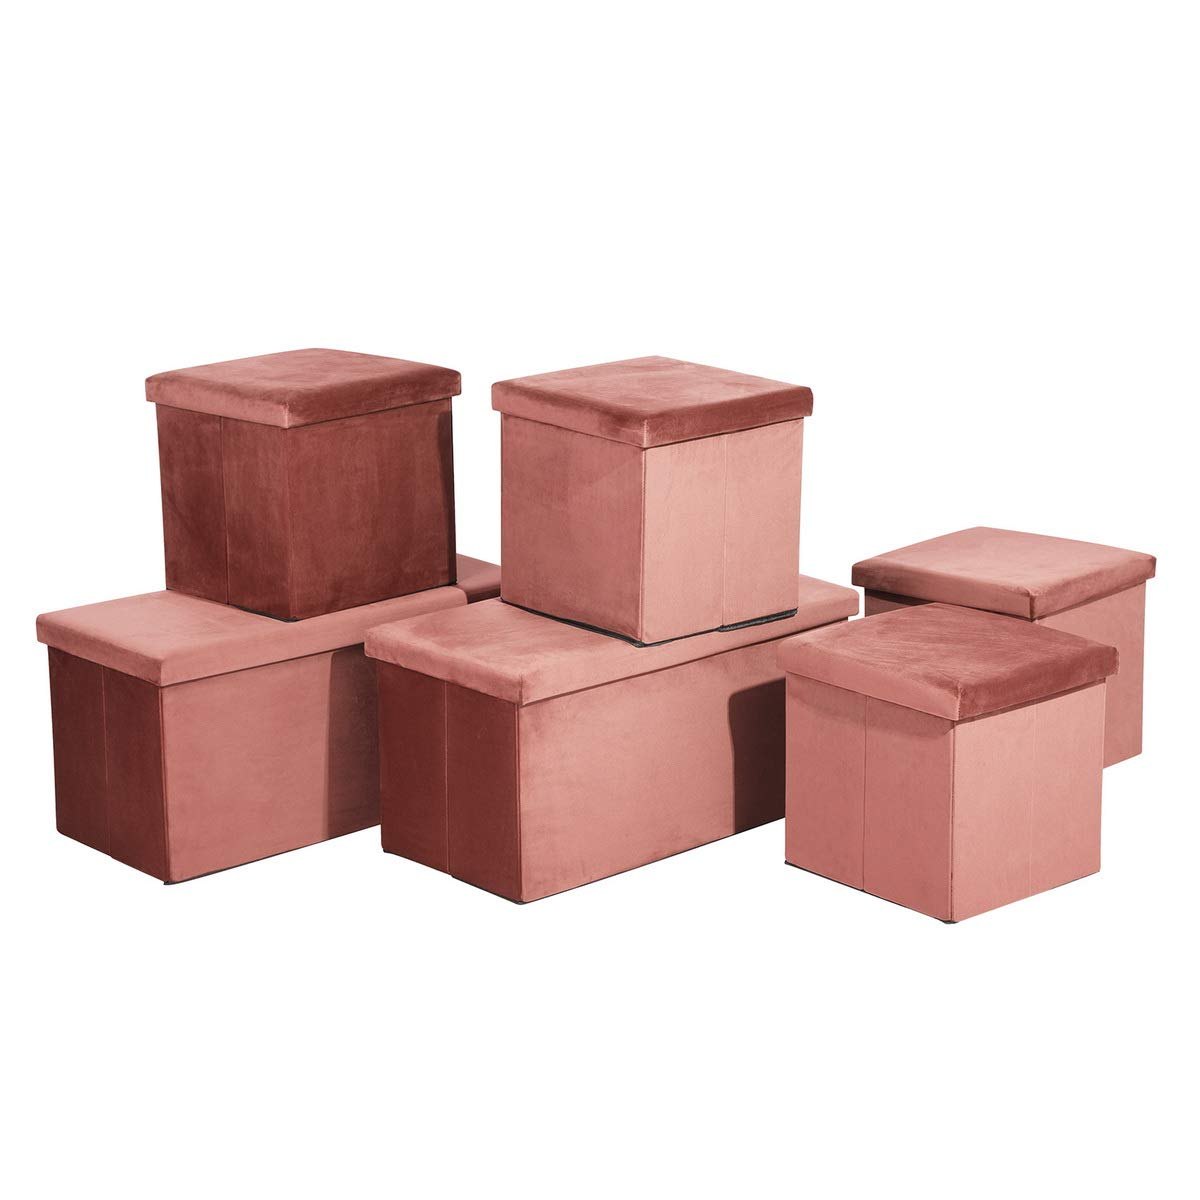 FurnitureR Set of 3 Multifunction Storage Ottoman Cube Fabric Cover Box, 4 Cube Box, 2 Rectangle Foot Rest Stool